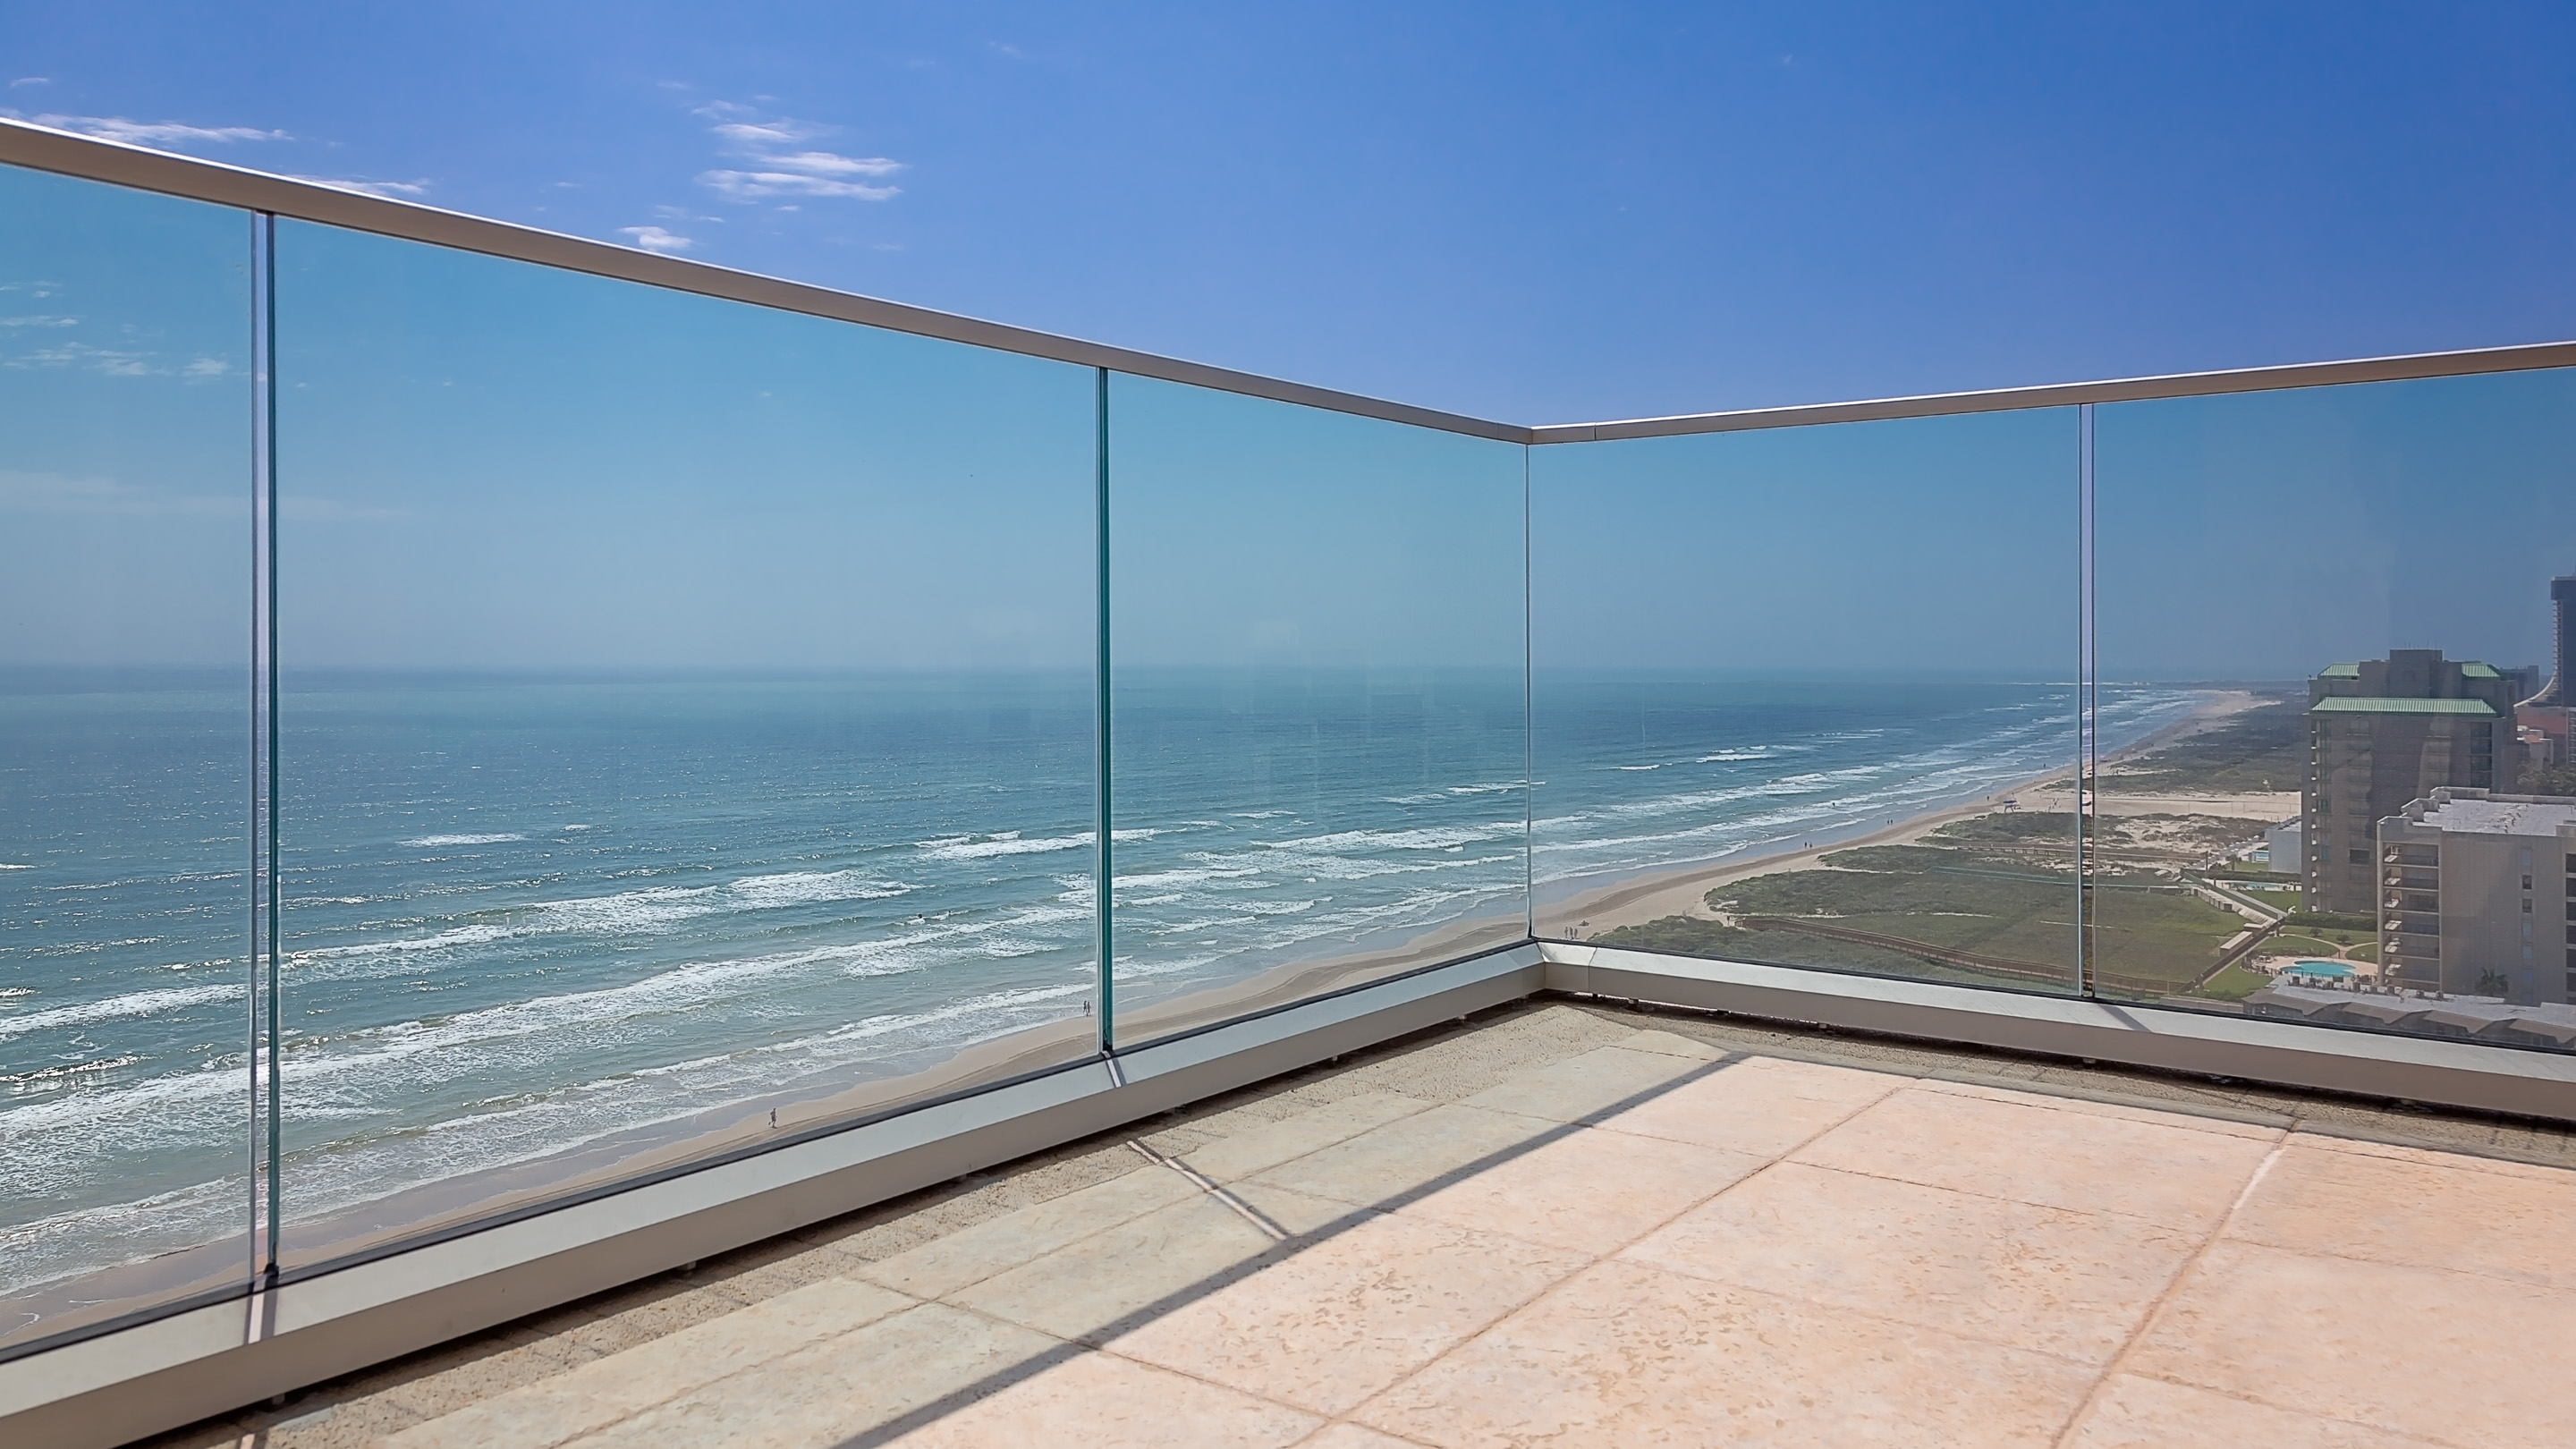 Isola Bella is a condominium in South Padre Island which features custom glass railing by Poma.